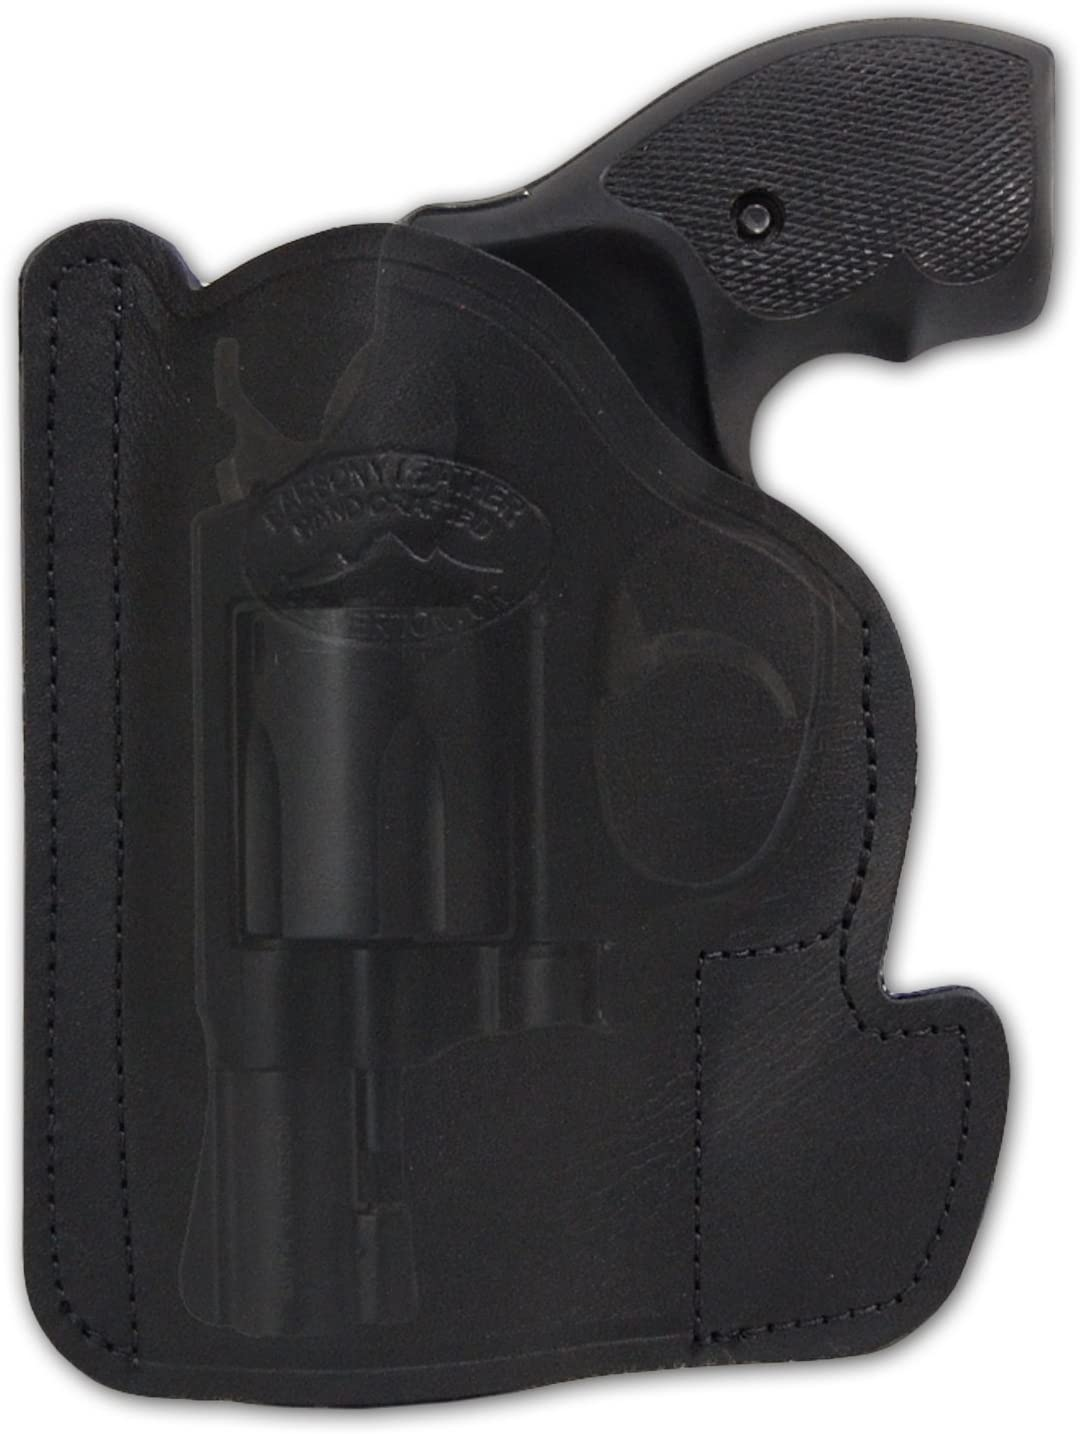 Barsony New Black Leather Selling and selling Pocket Holster overseas .38 . 2